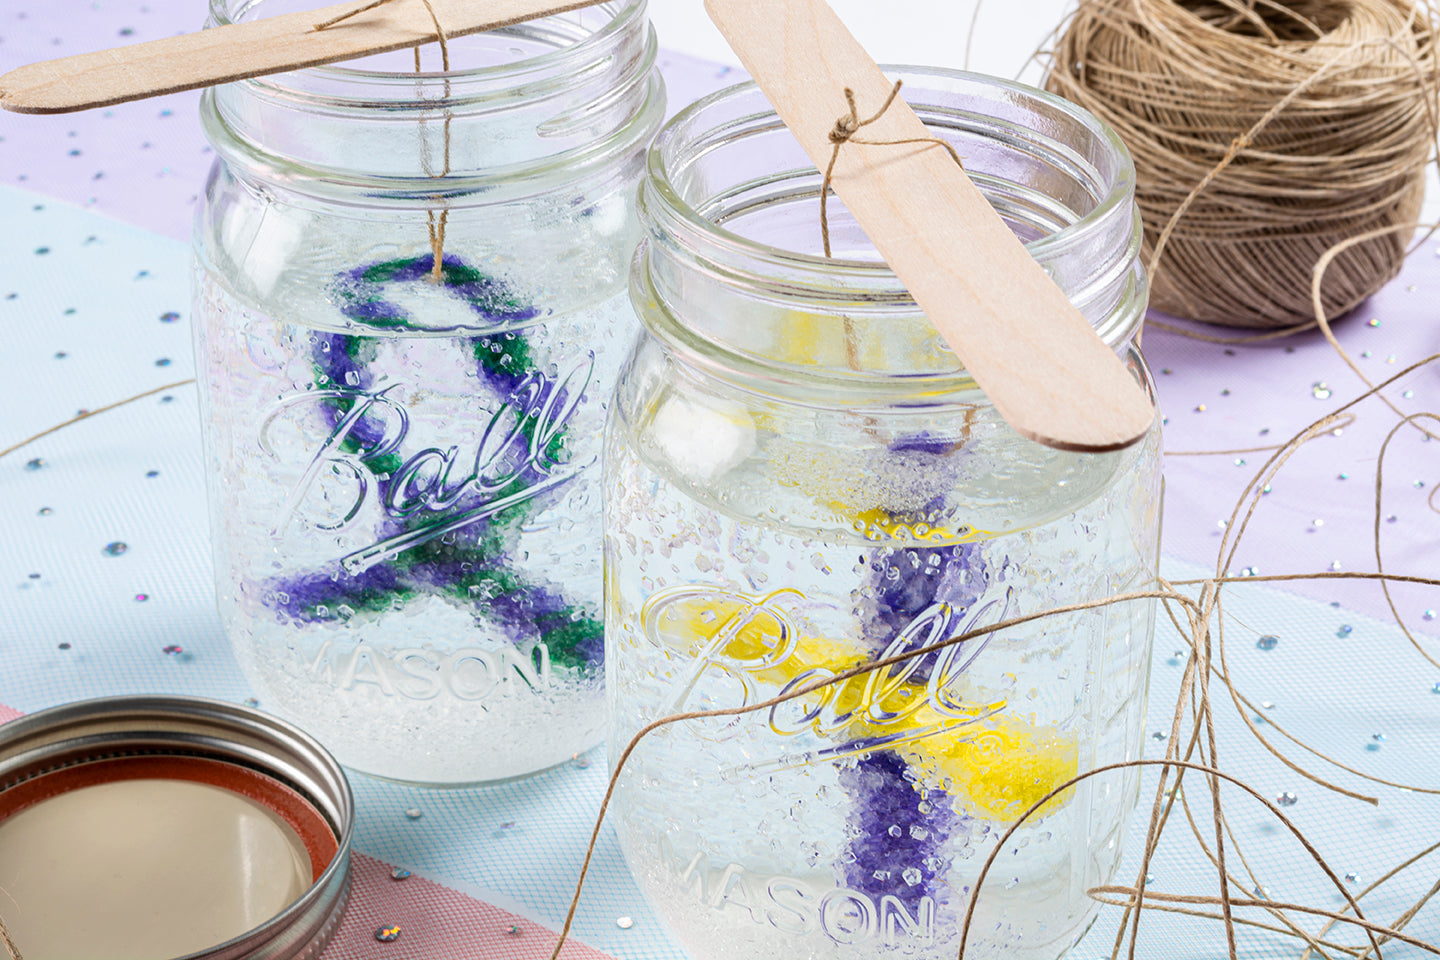 Closeup image of borax pipe cleaner crystals being made in jars with string and sparkles in background